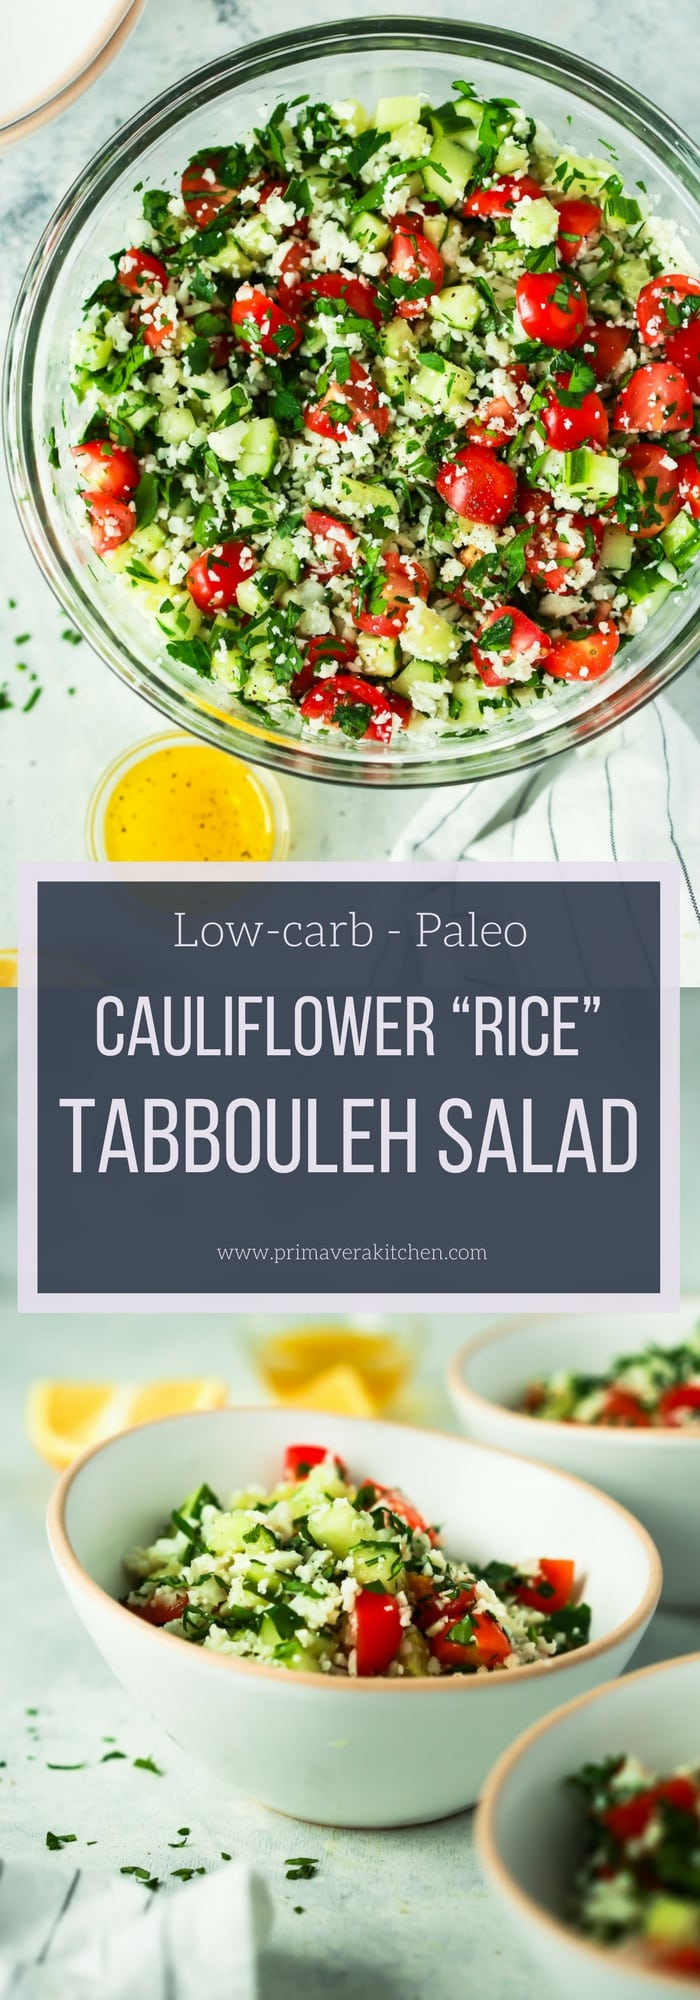 "Cauliflower ""Rice"" Tabbouleh Salad"